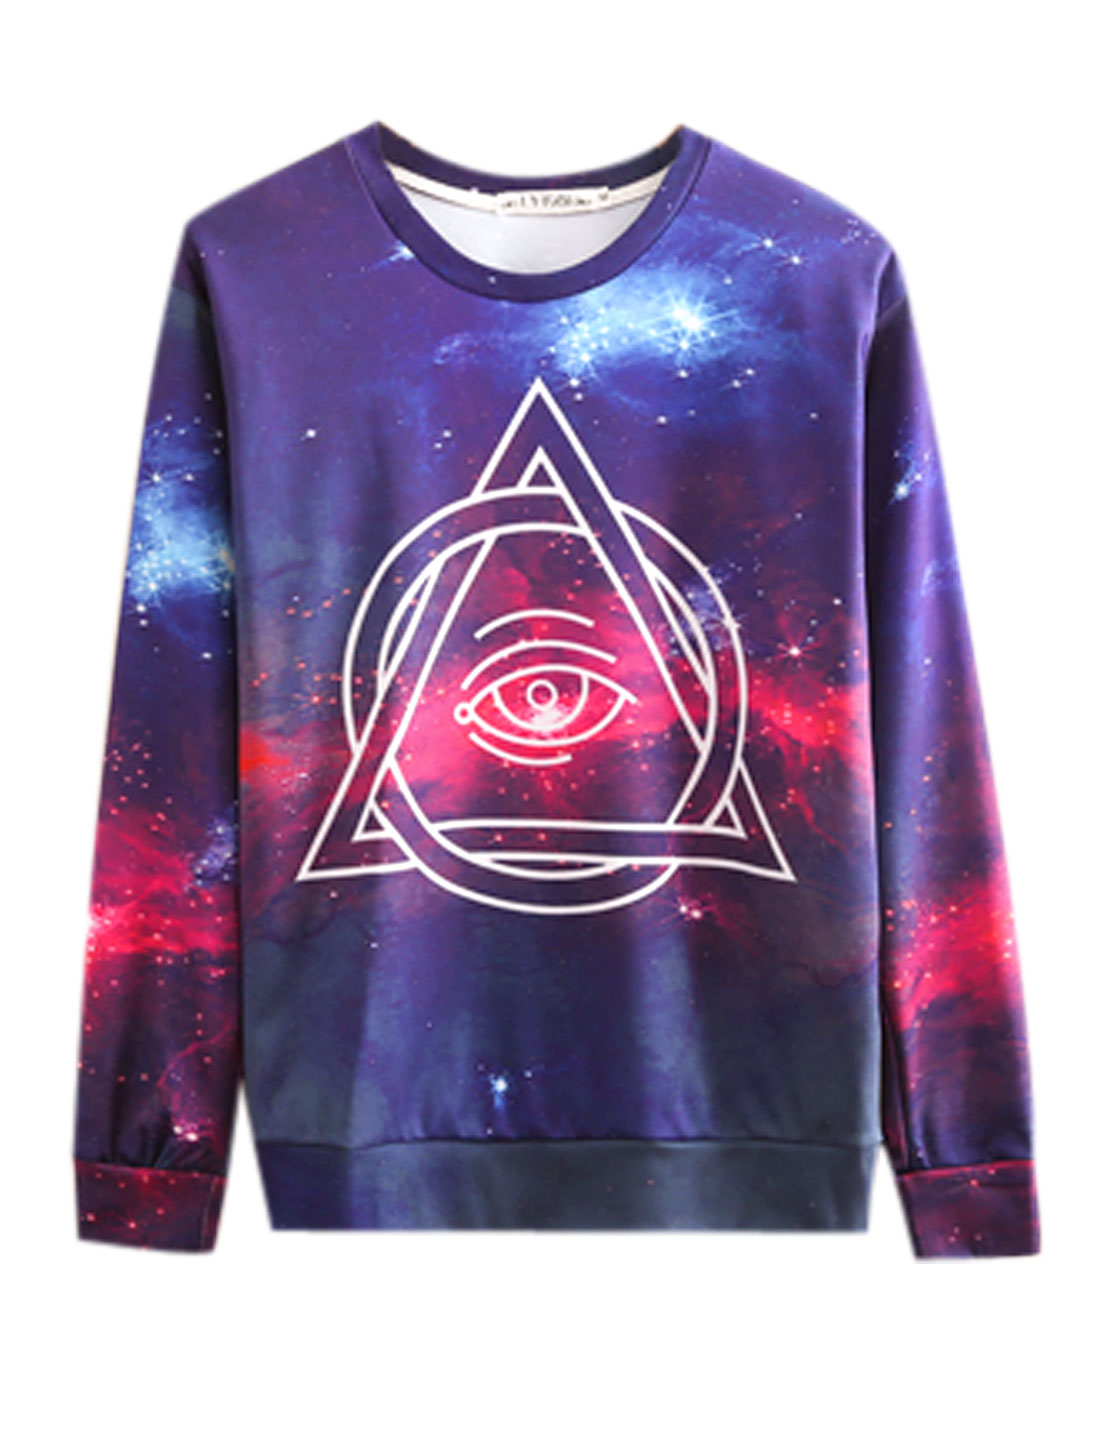 Men Round Neck Long Sleeves Geometric Prints Leisure Sweatshirt Purple M